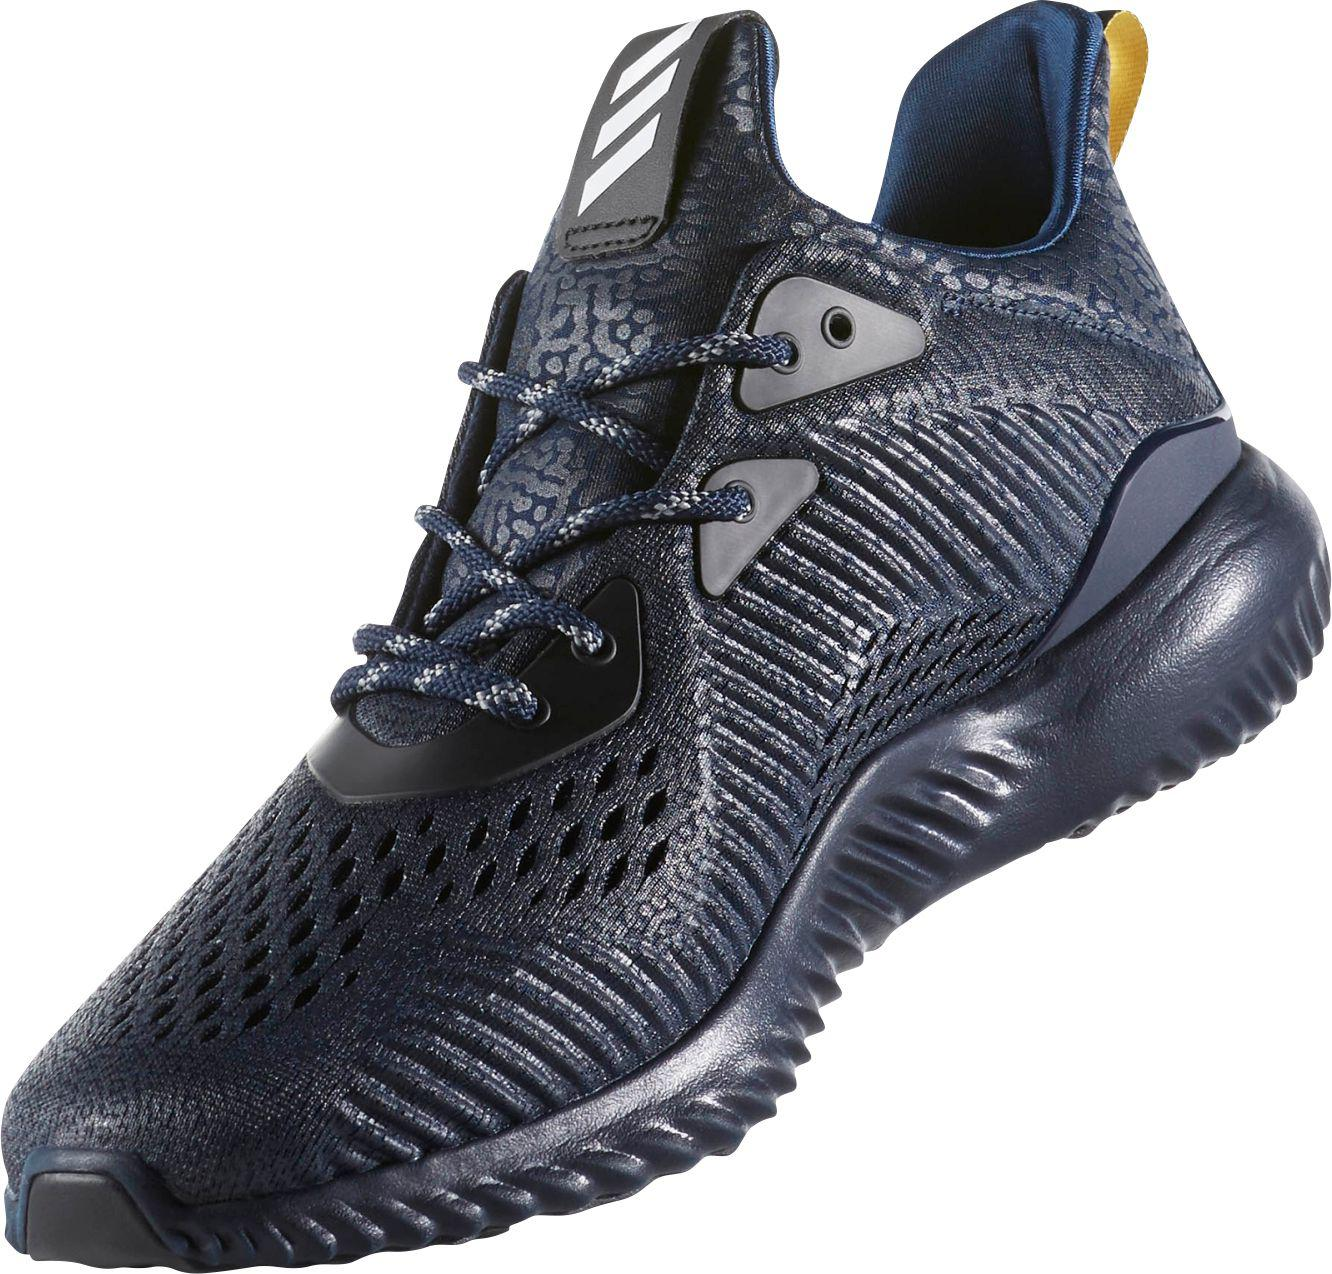 adidas Alphabounce Ams Running Shoes in